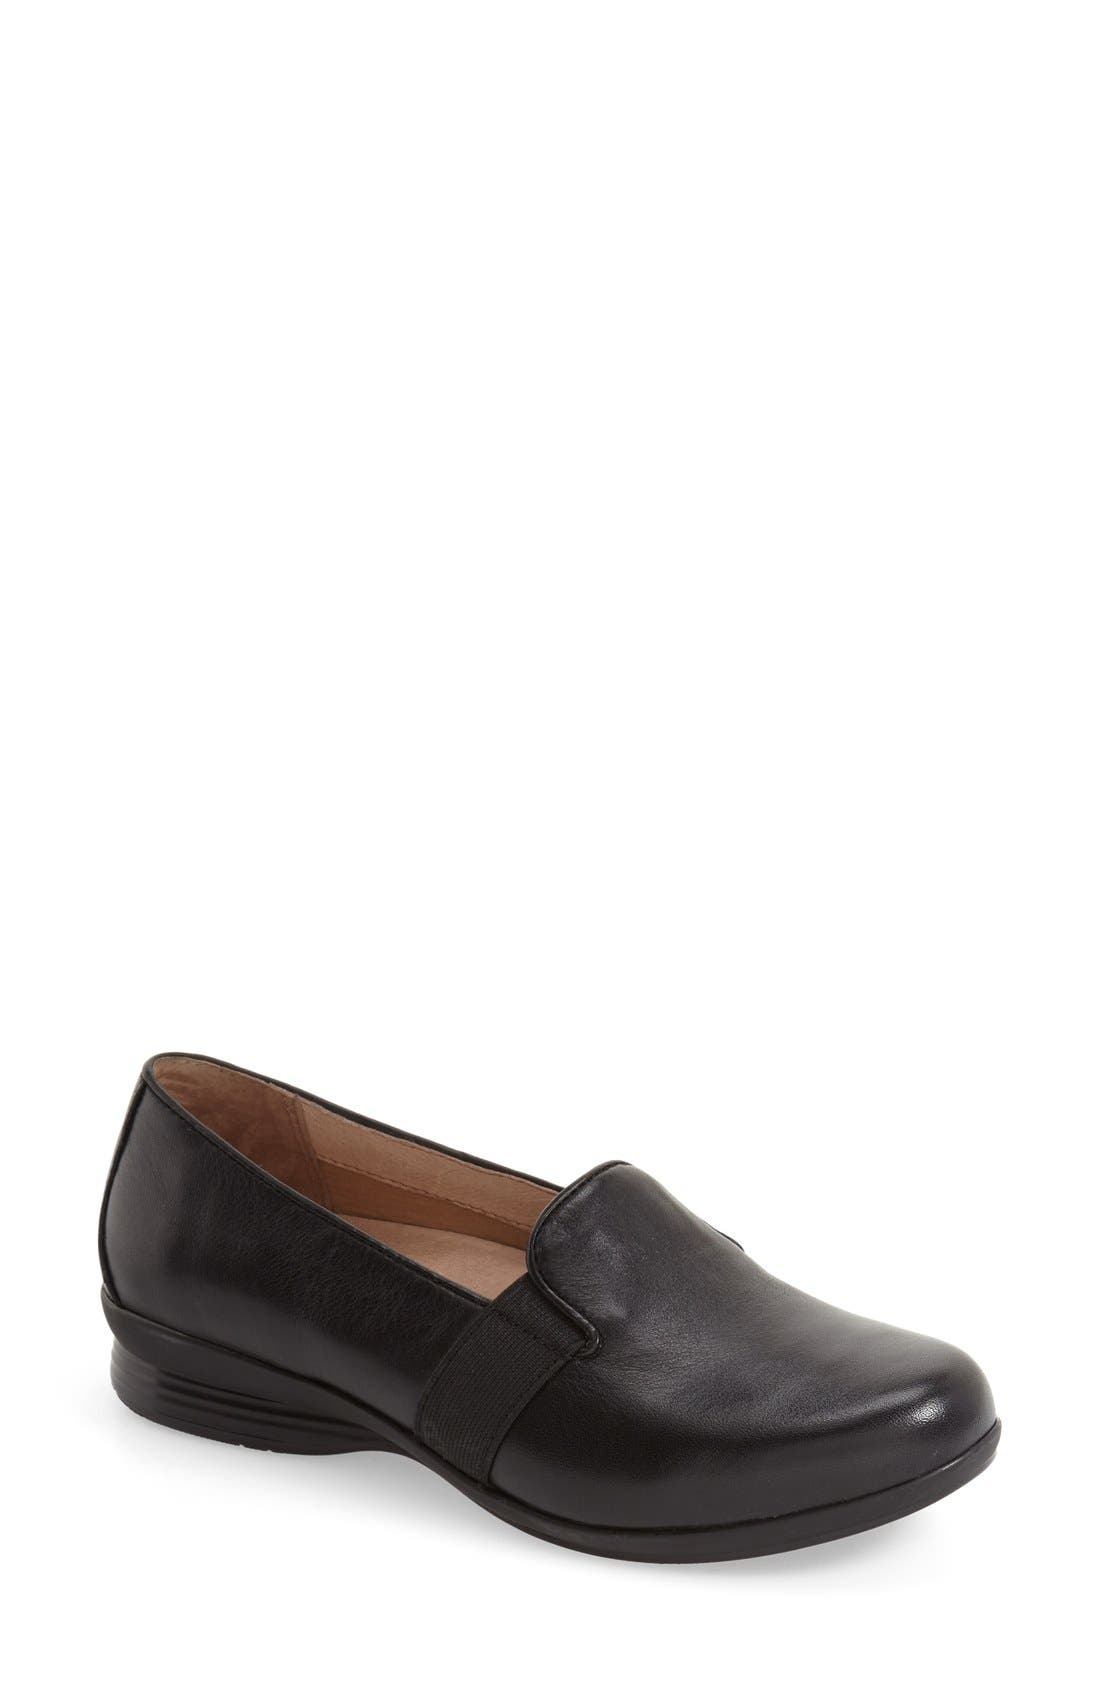 'Addy' Loafer,                             Main thumbnail 1, color,                             Black Nappa Leather